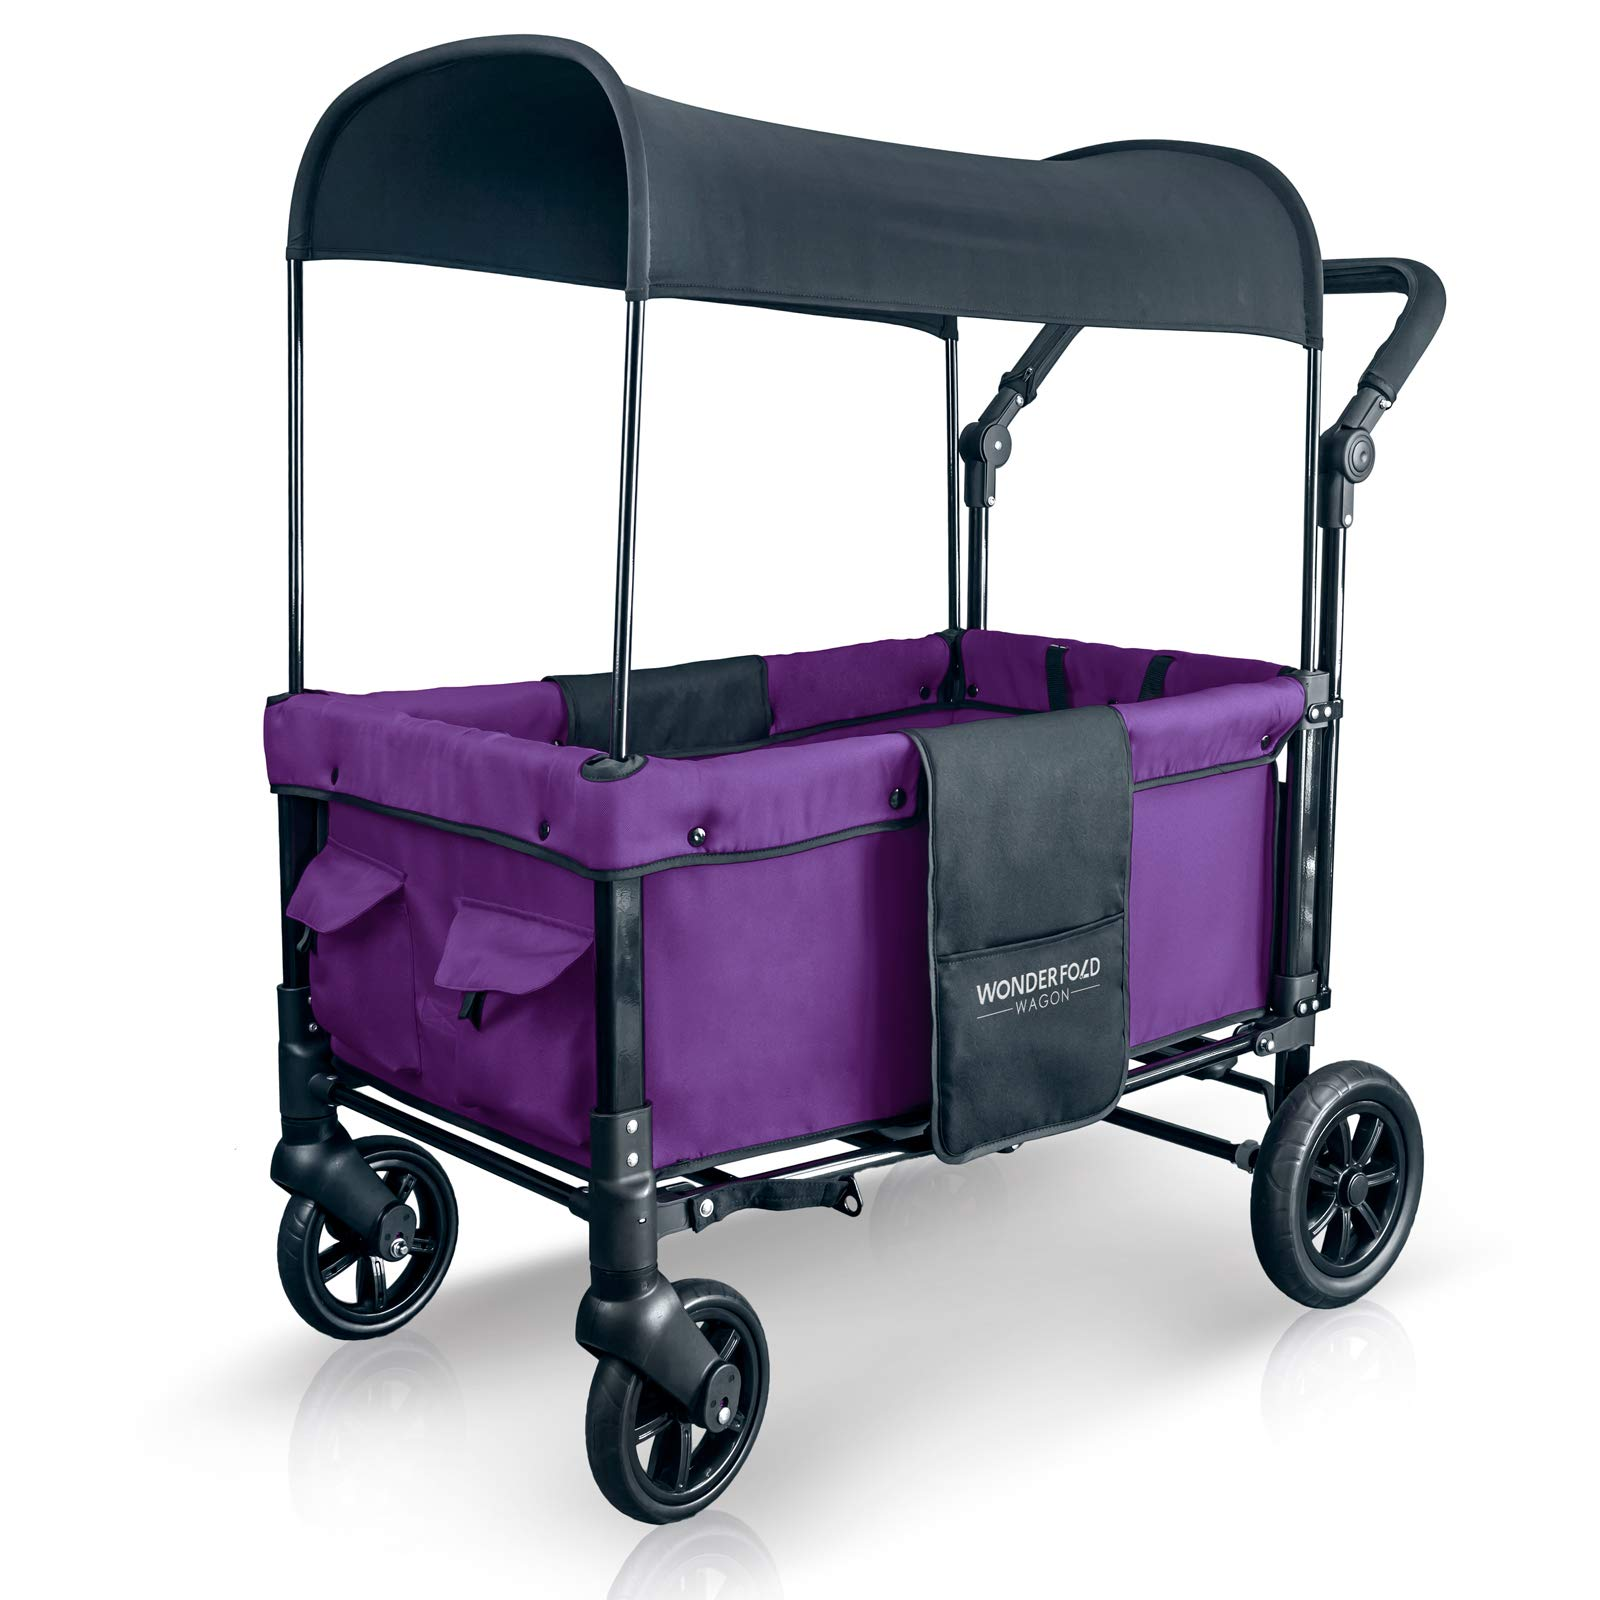 WonderFold Multi-Function 2 Passenger Push Folding Stroller Wagon, Adjustable & Removable Canopy, Double Seats with 5-Point Harness (Cobalt Violet) by WonderFold